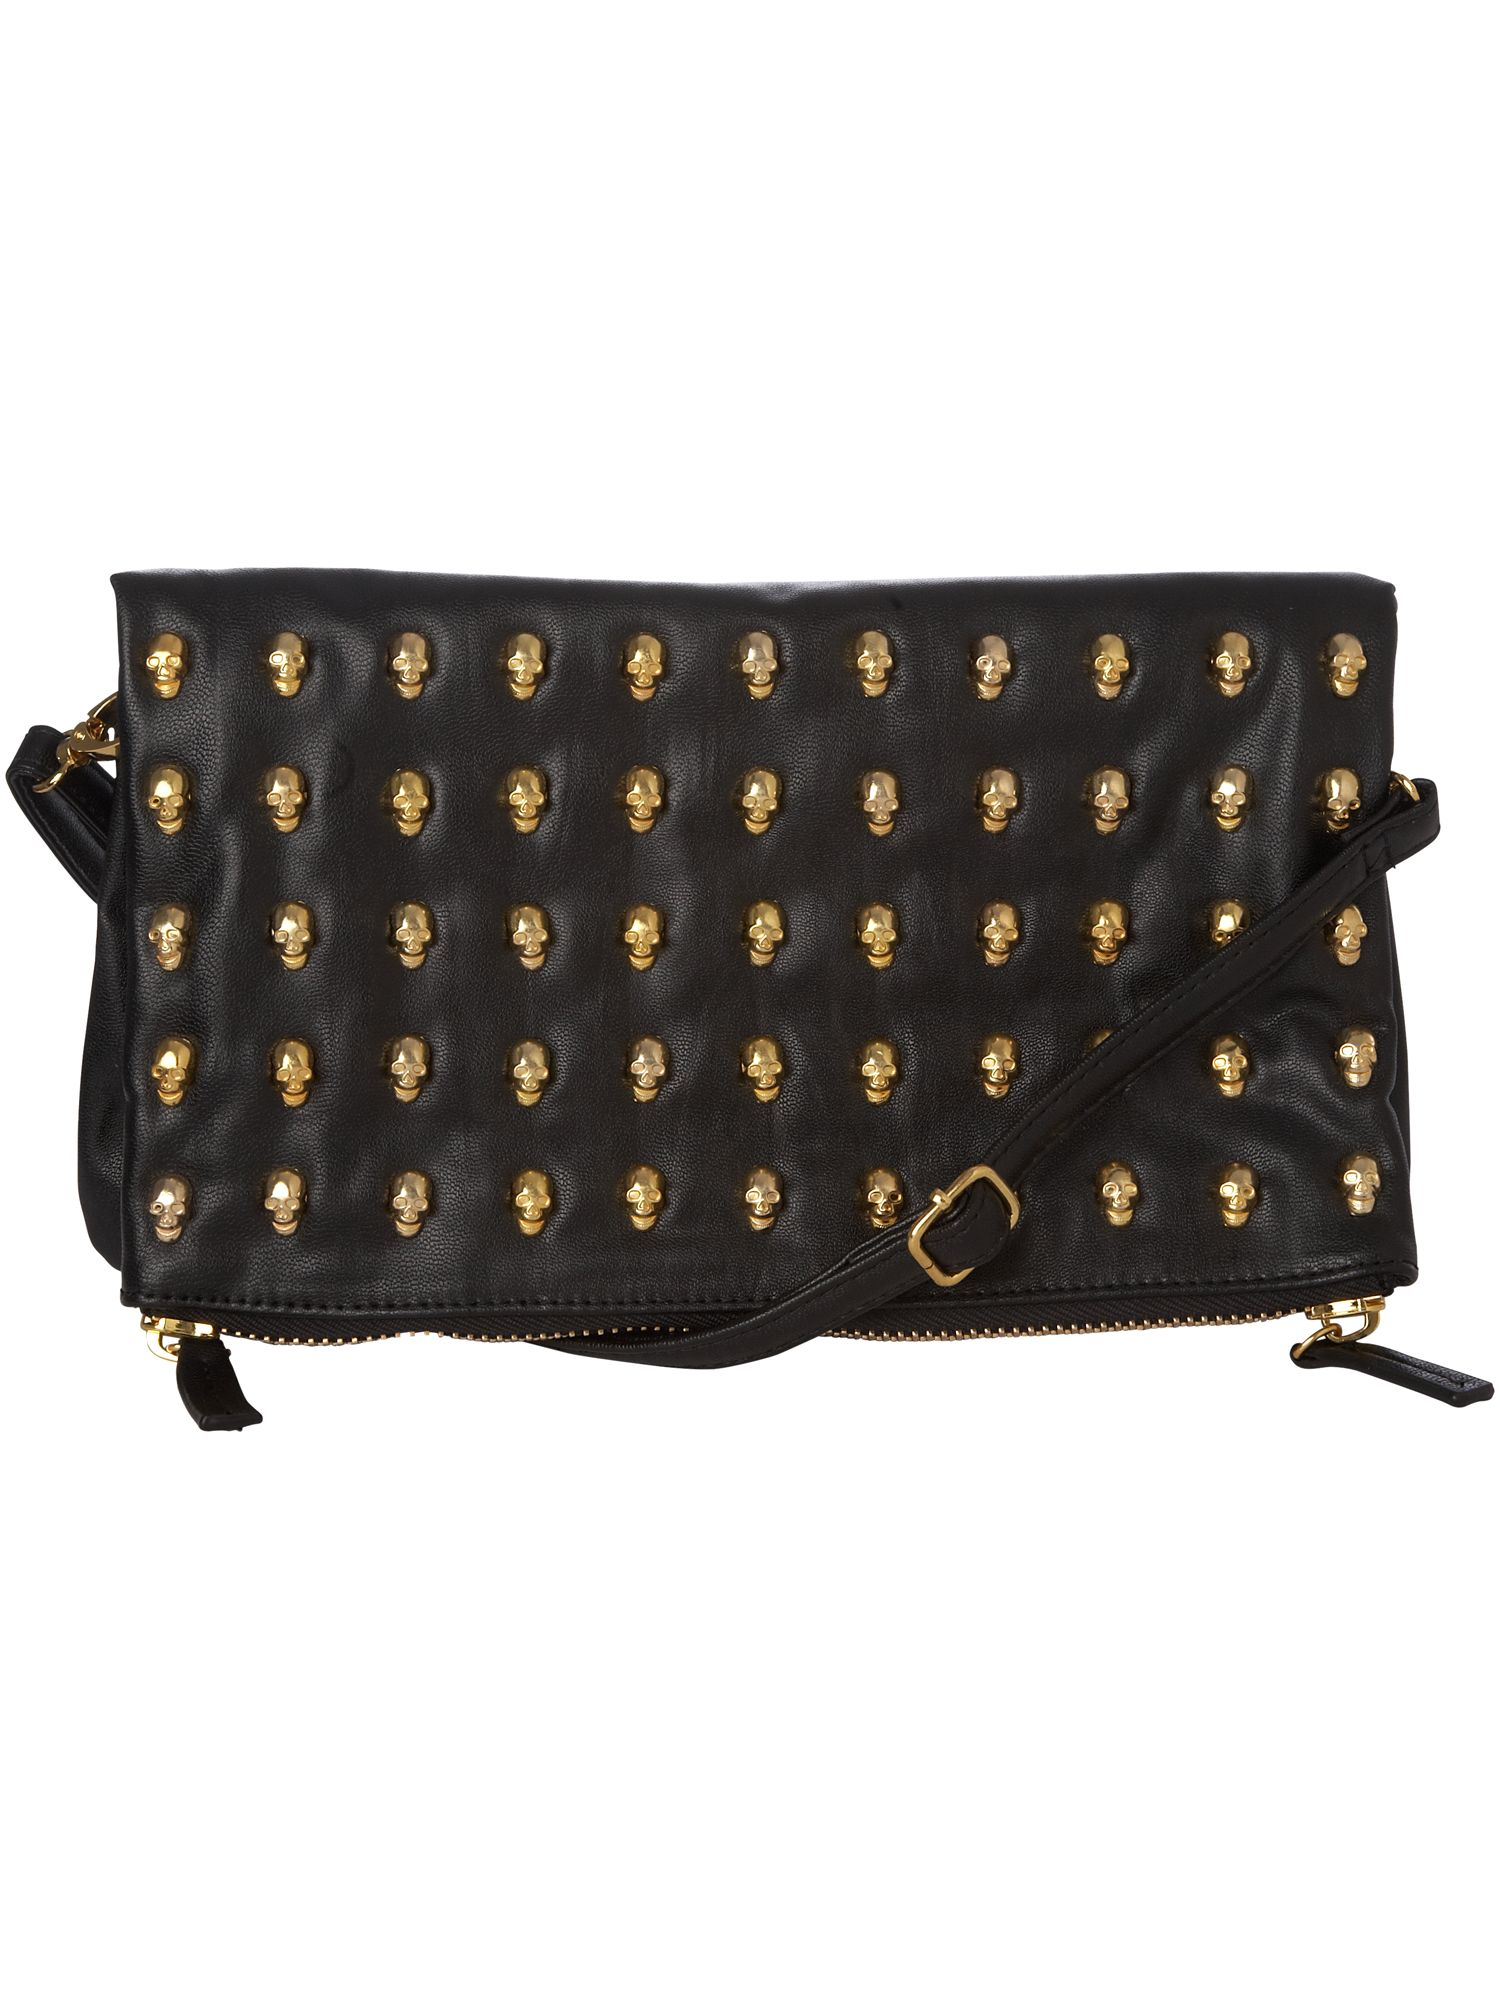 Max C Skull stud clutch bag product image